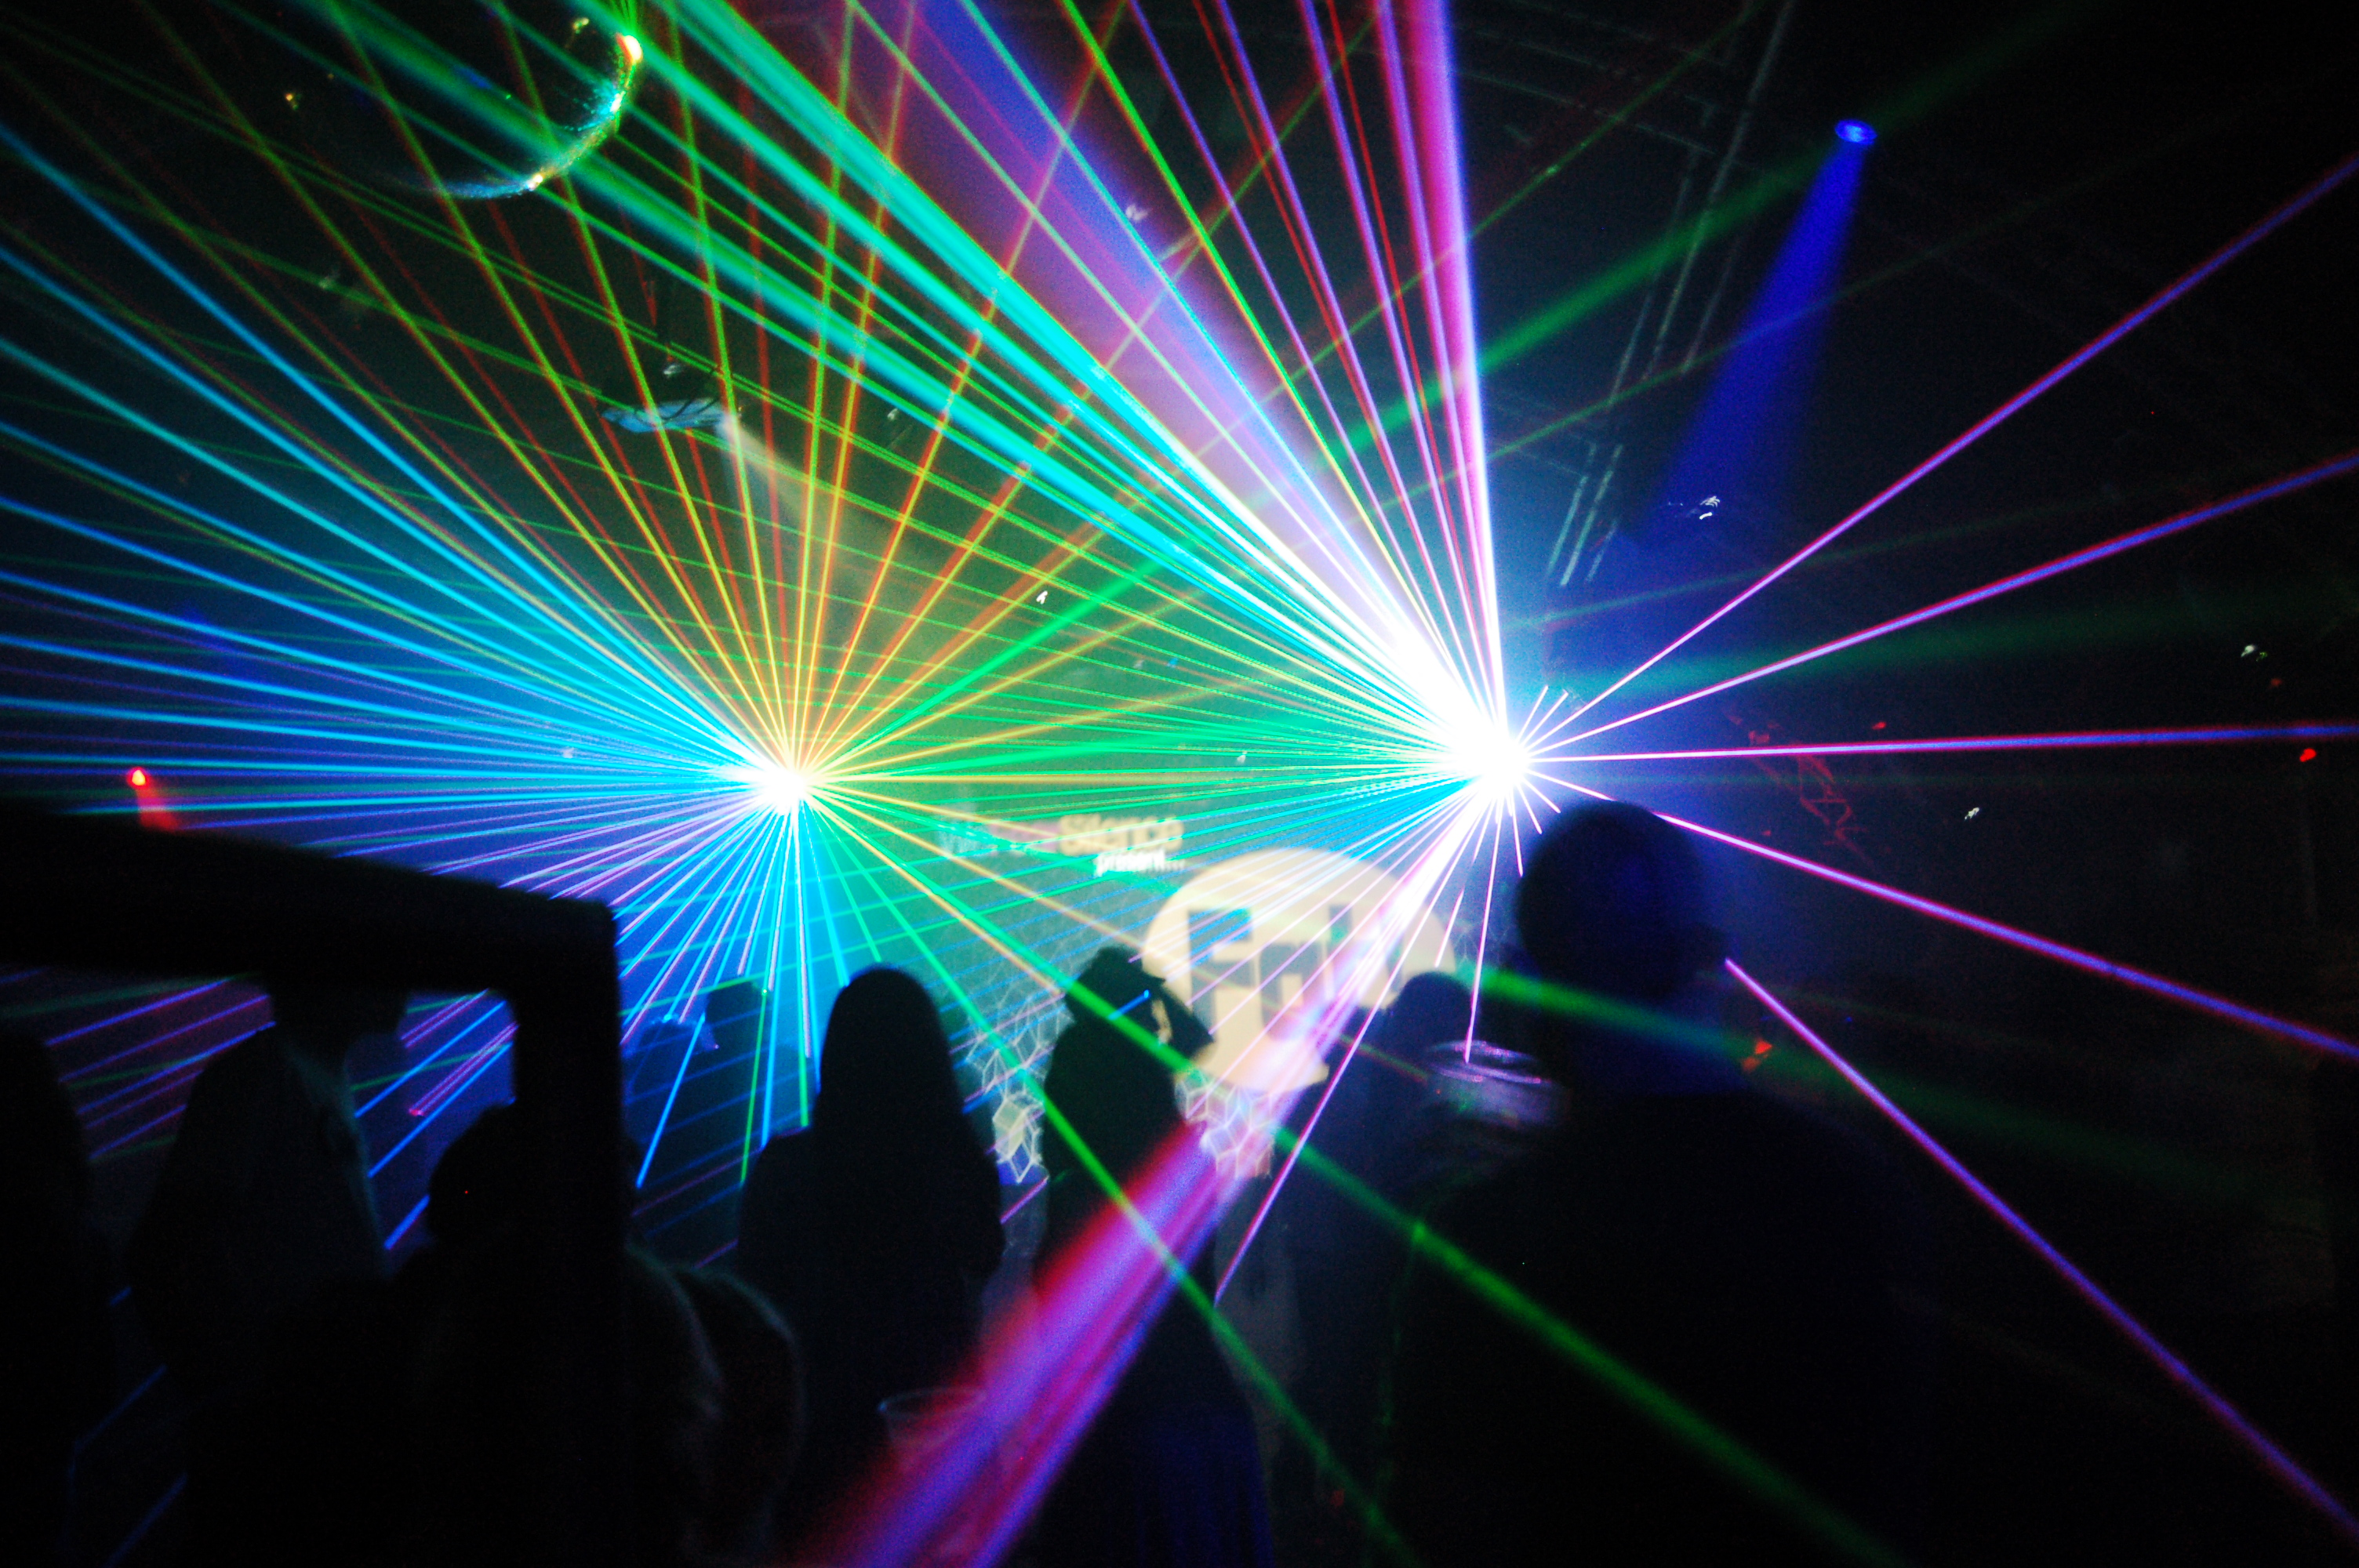 Laser Show in a Club 650.32 Kb